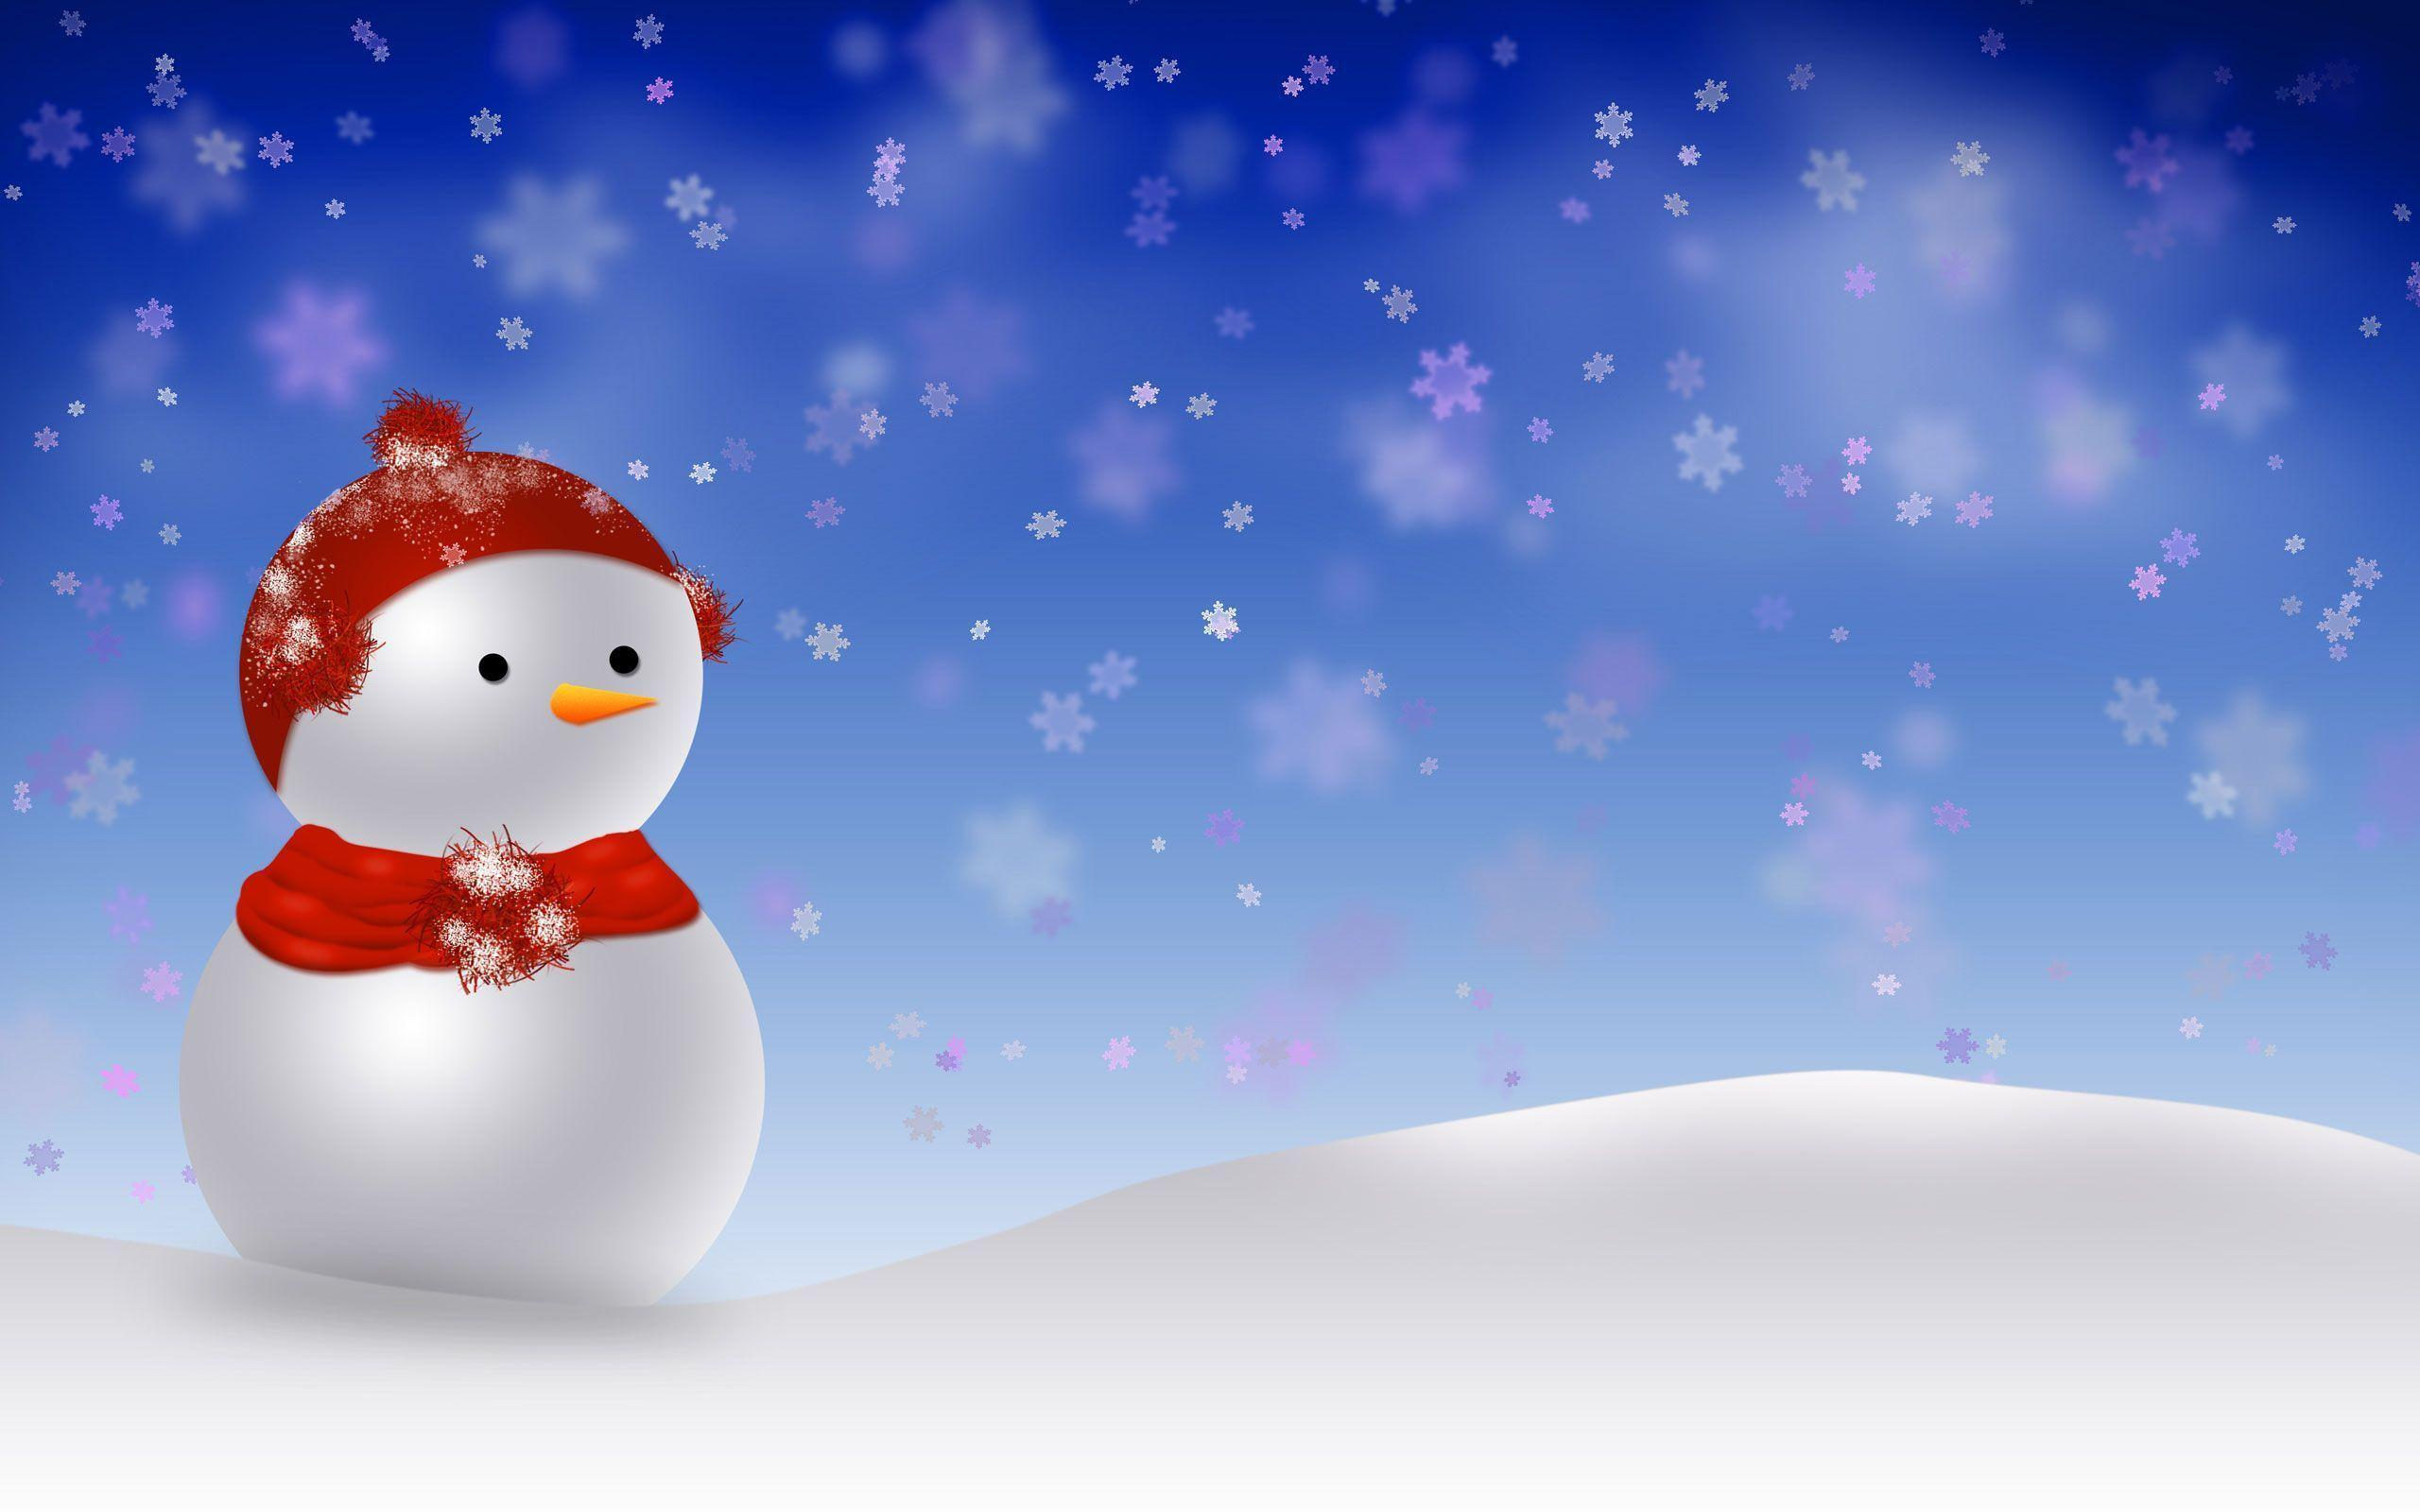 Christmas Backgrounds Snowman Wallpapers